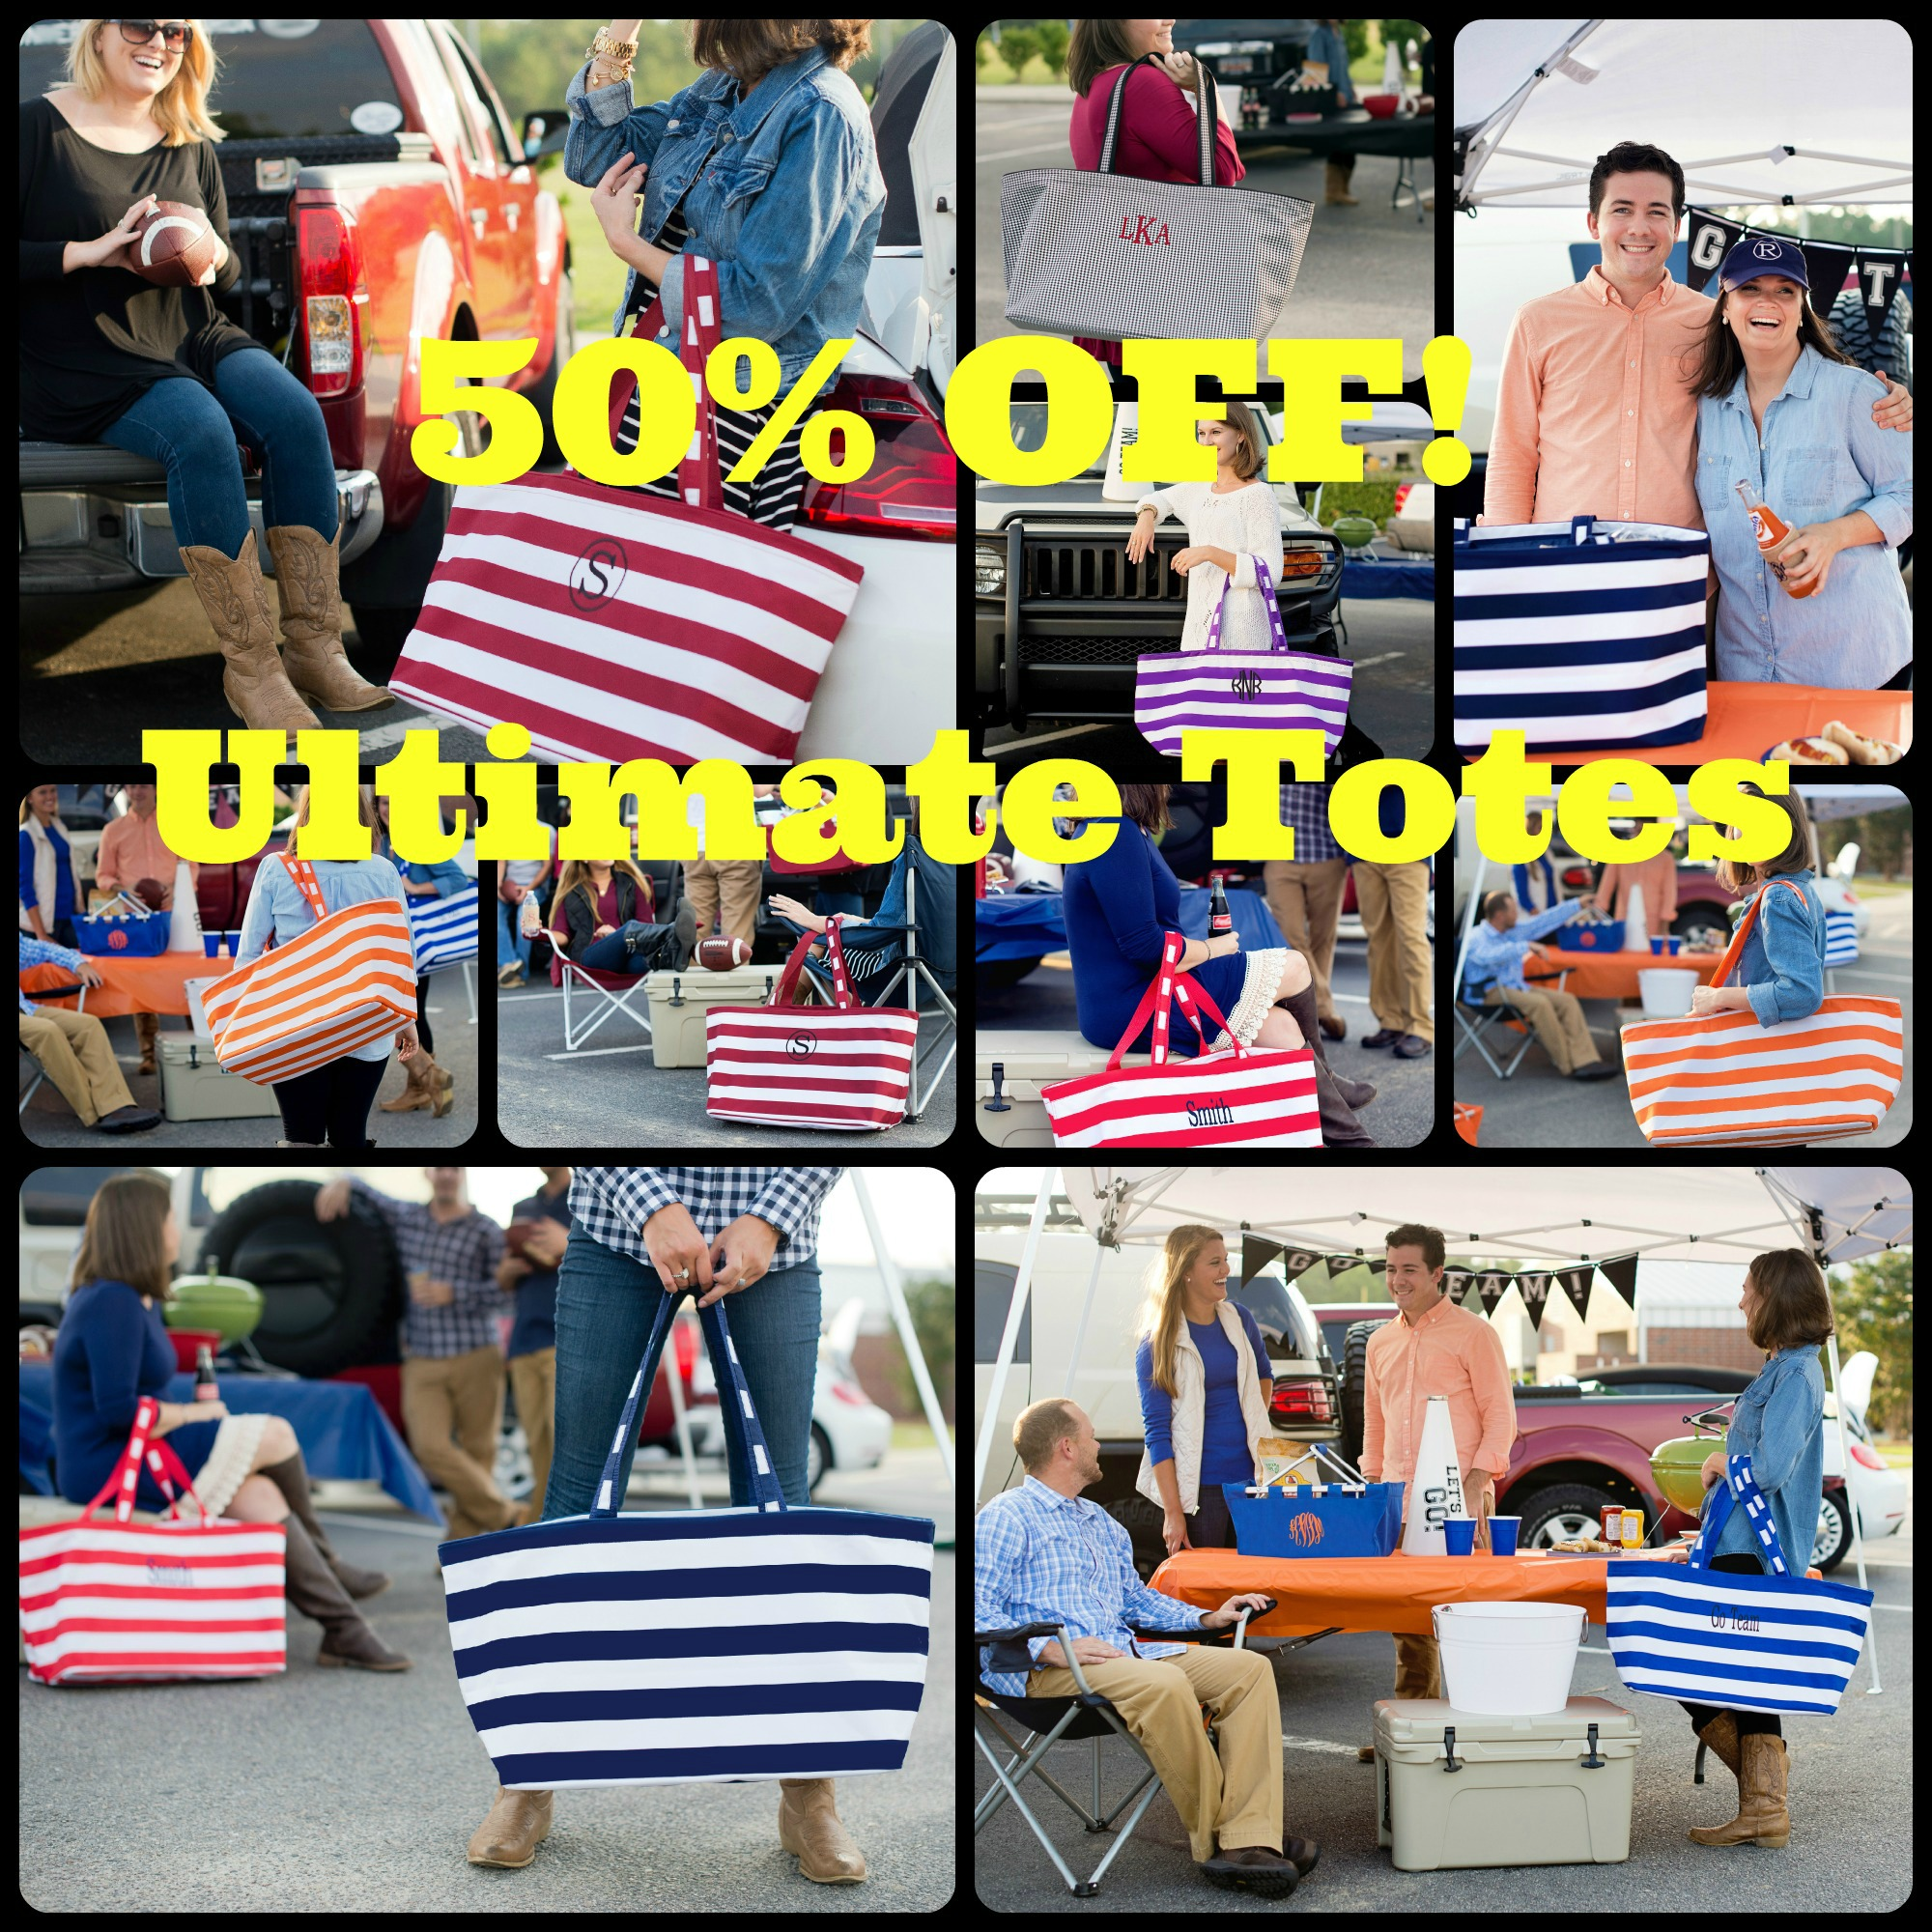 50% Off Ultimate Totes, farmers market tote, utility tote, striped tote, houndstooth tote bags, tote bags, striped tote bags,